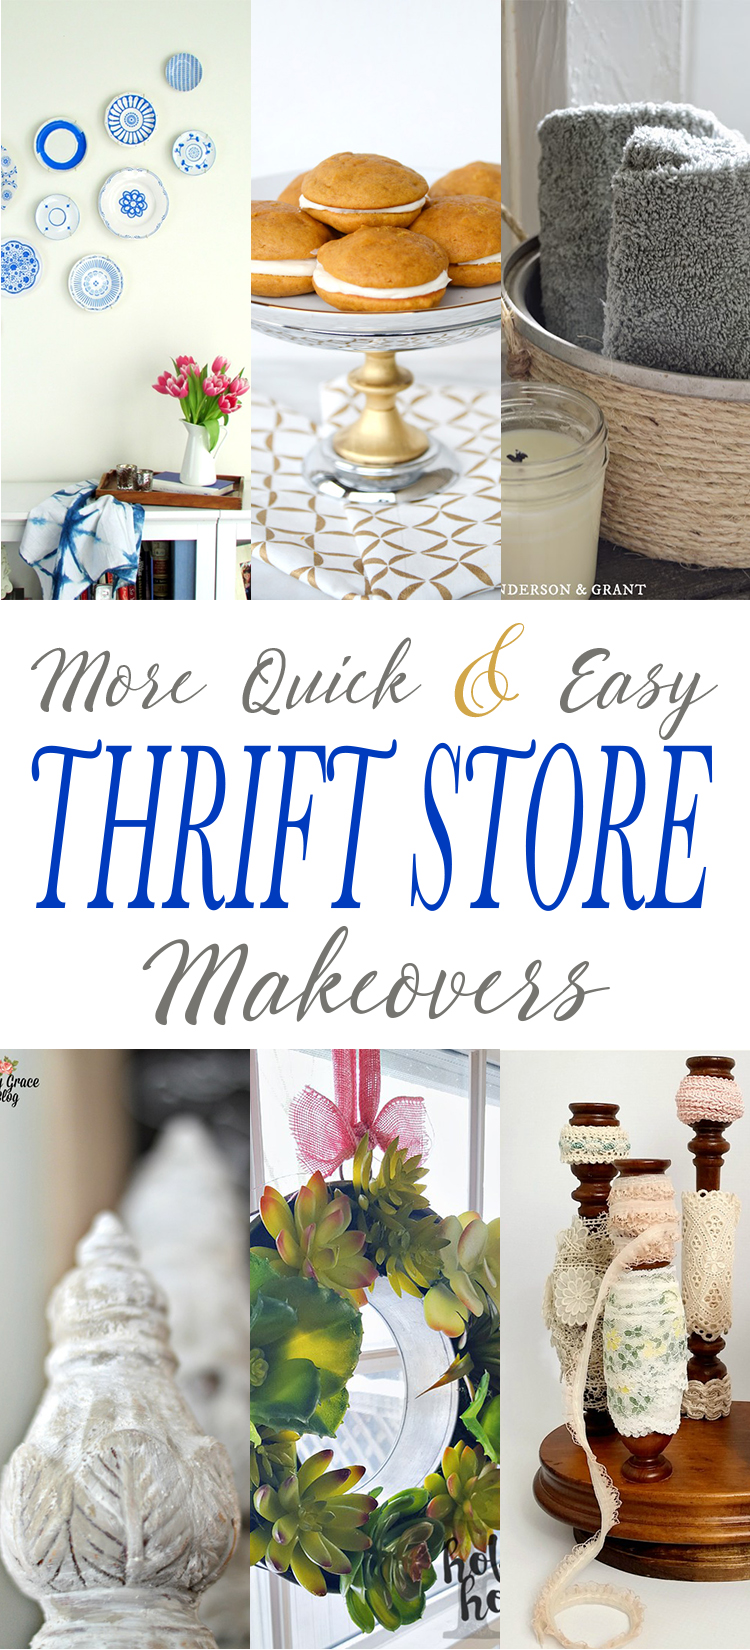 http://thecottagemarket.com/wp-content/uploads/2016/02/ThriftStore-tower-001.jpg